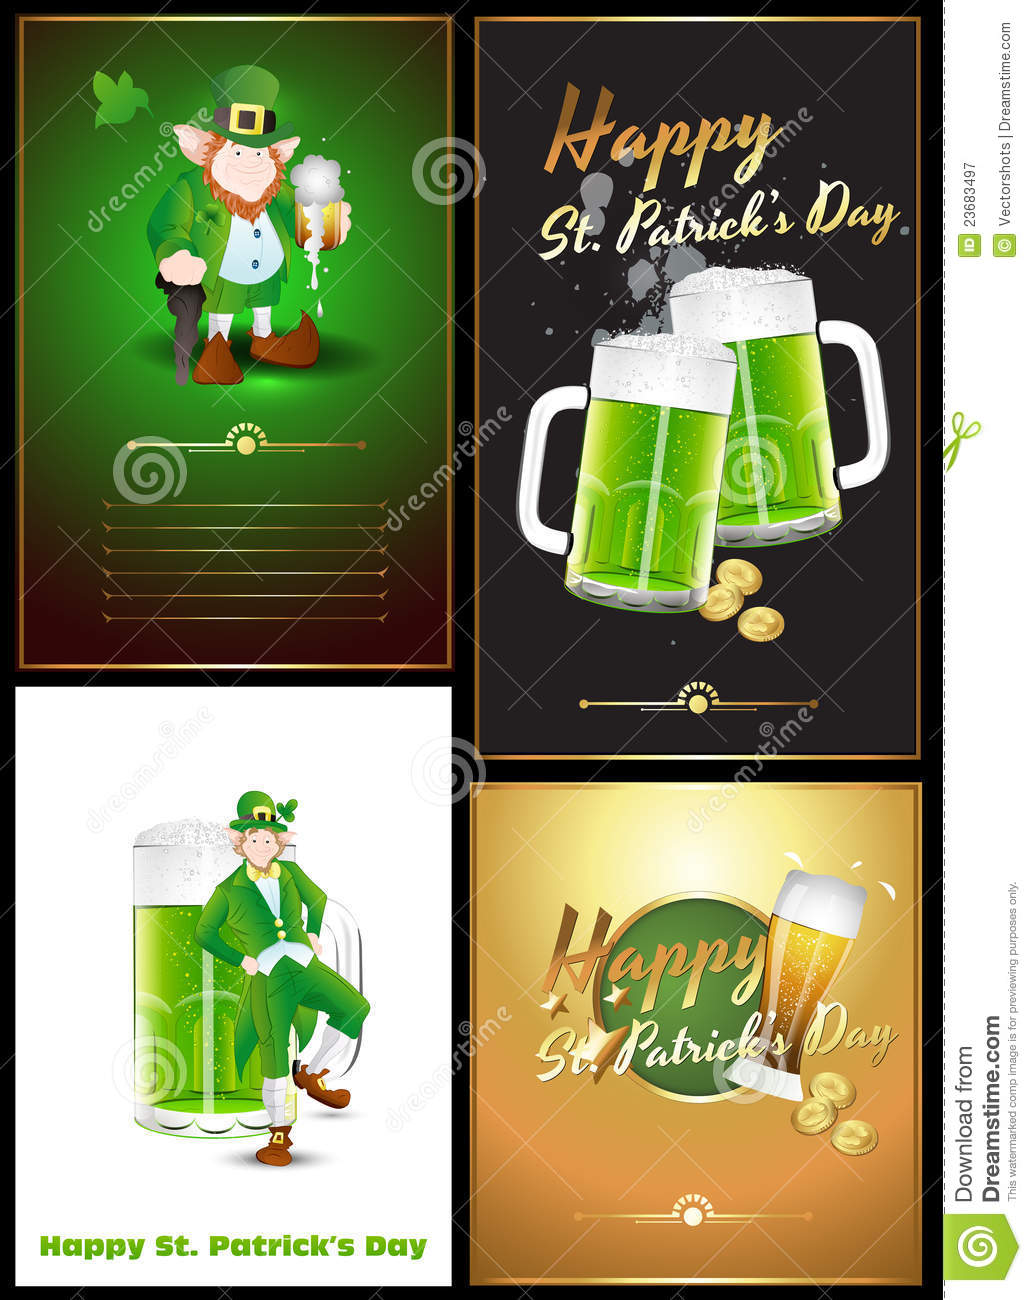 St Patricks Day Greetings Vectors Stock Vector Illustration Of